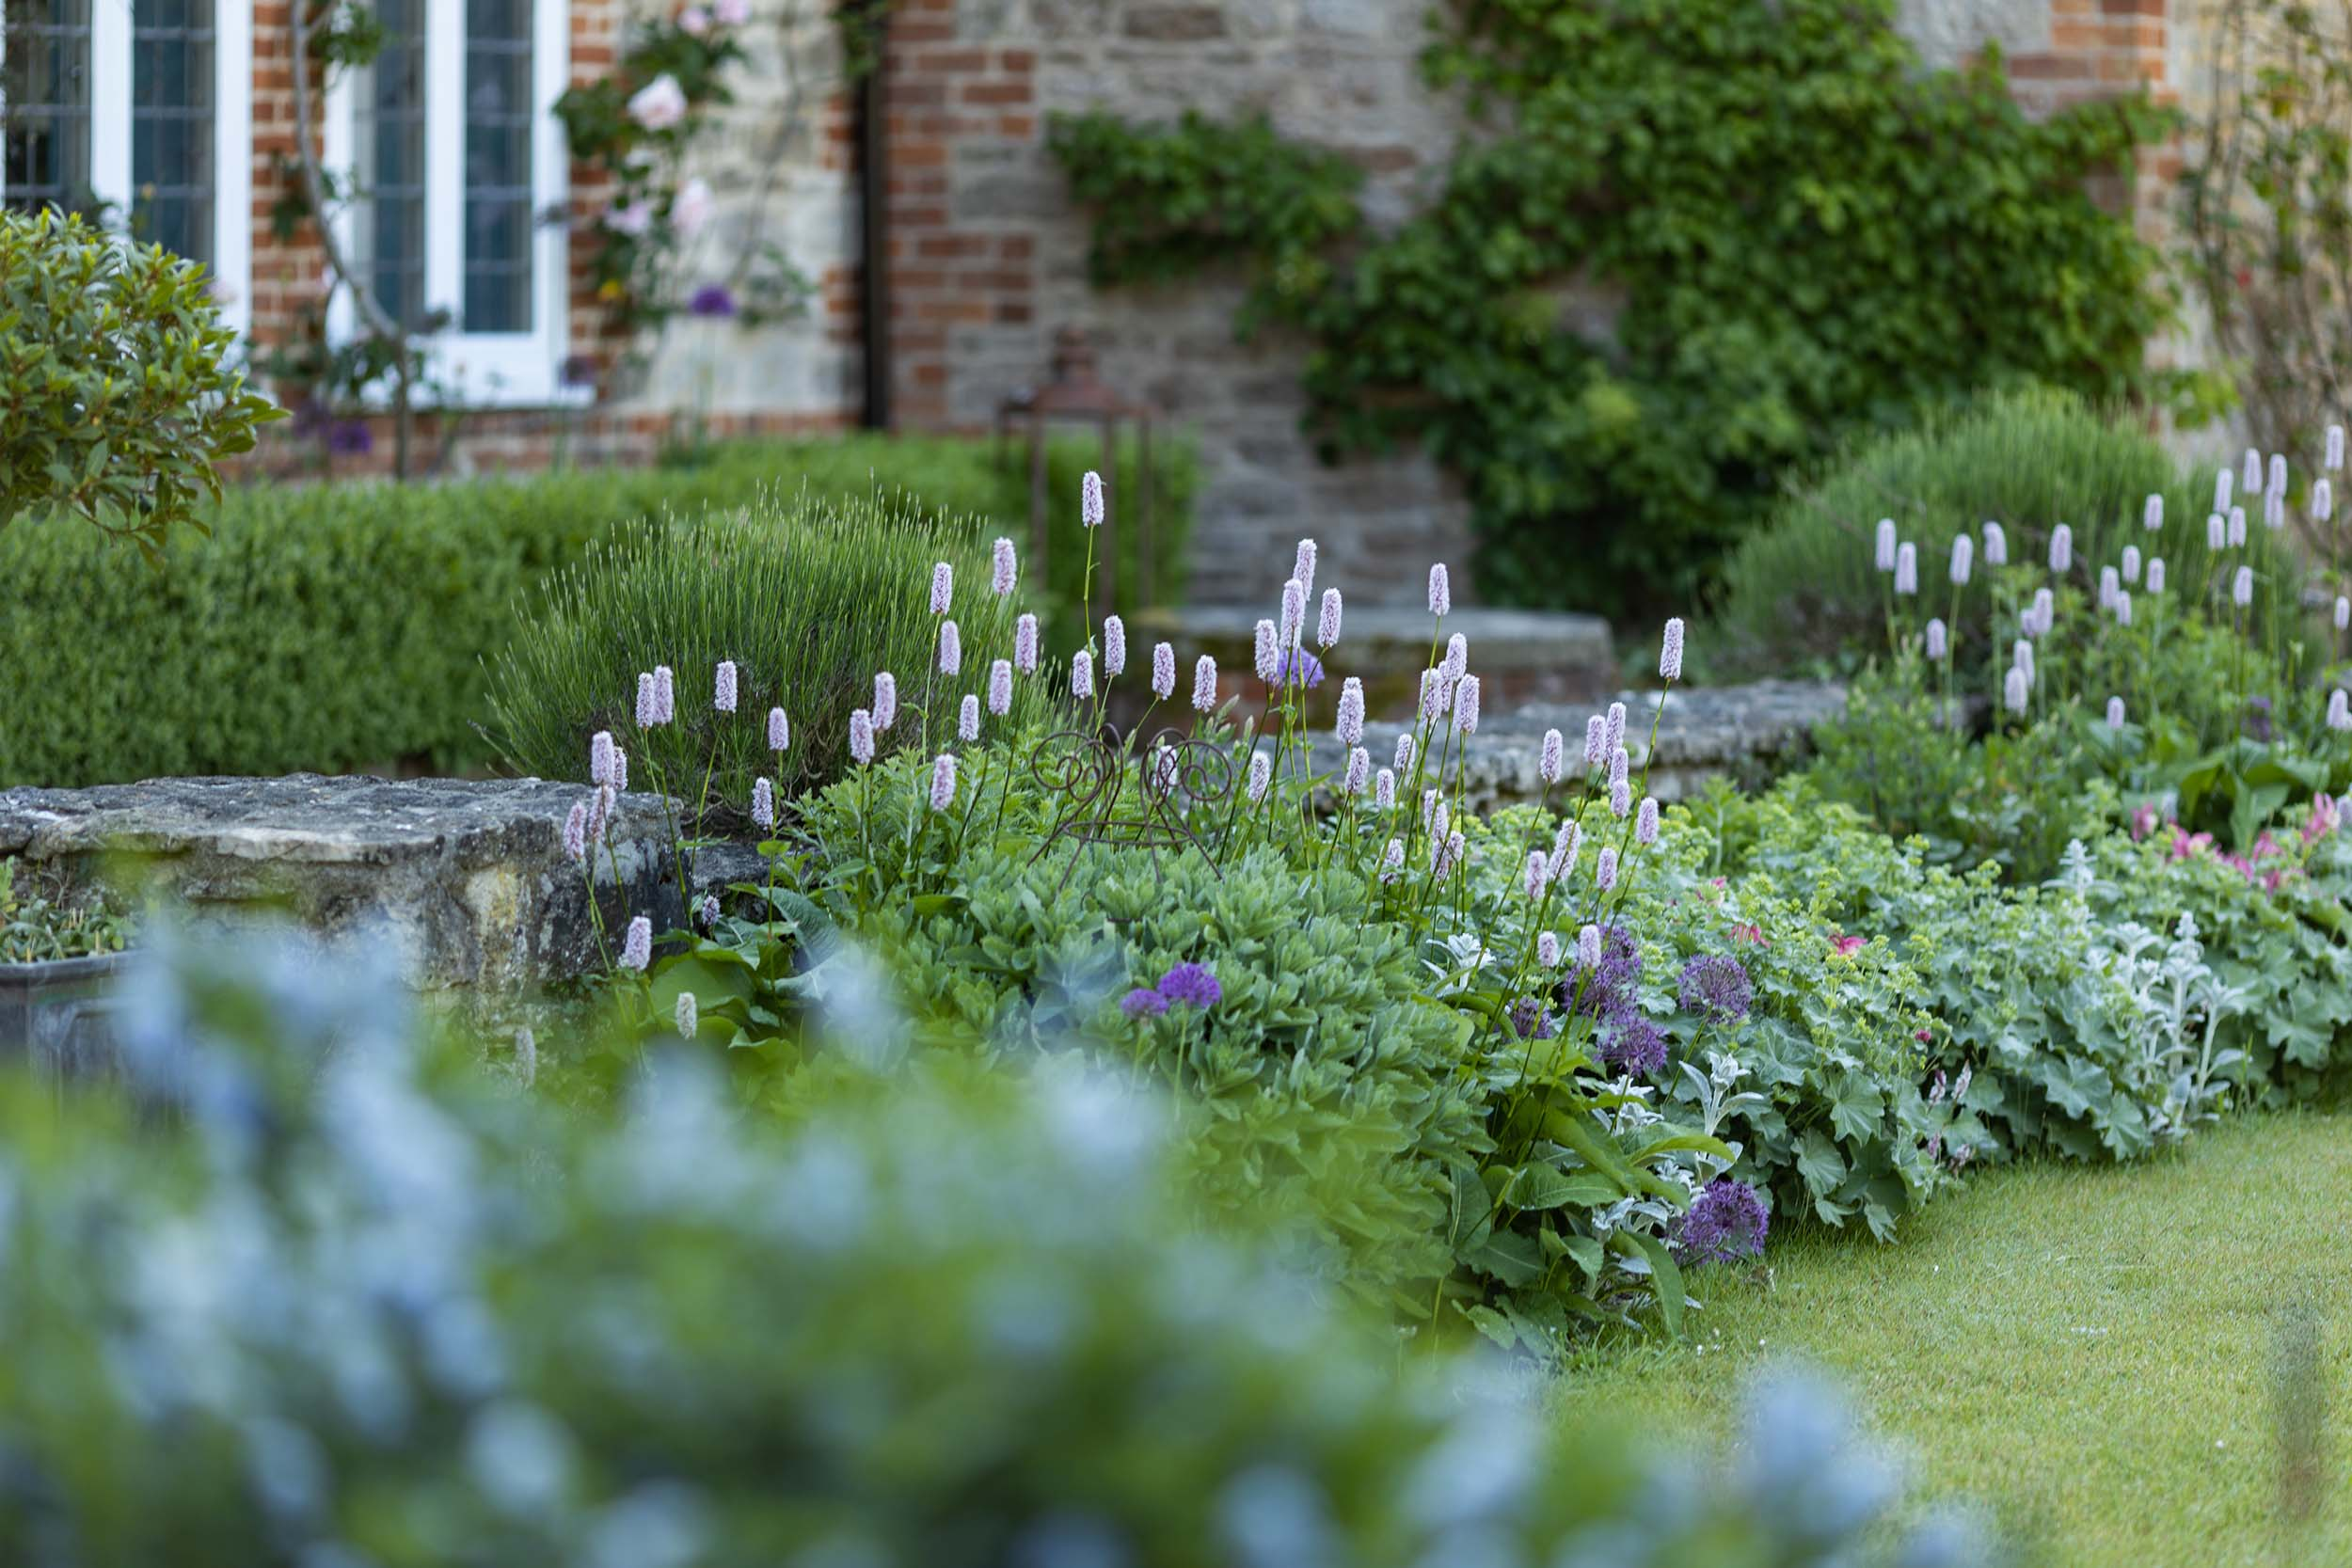 The Secluded Garden